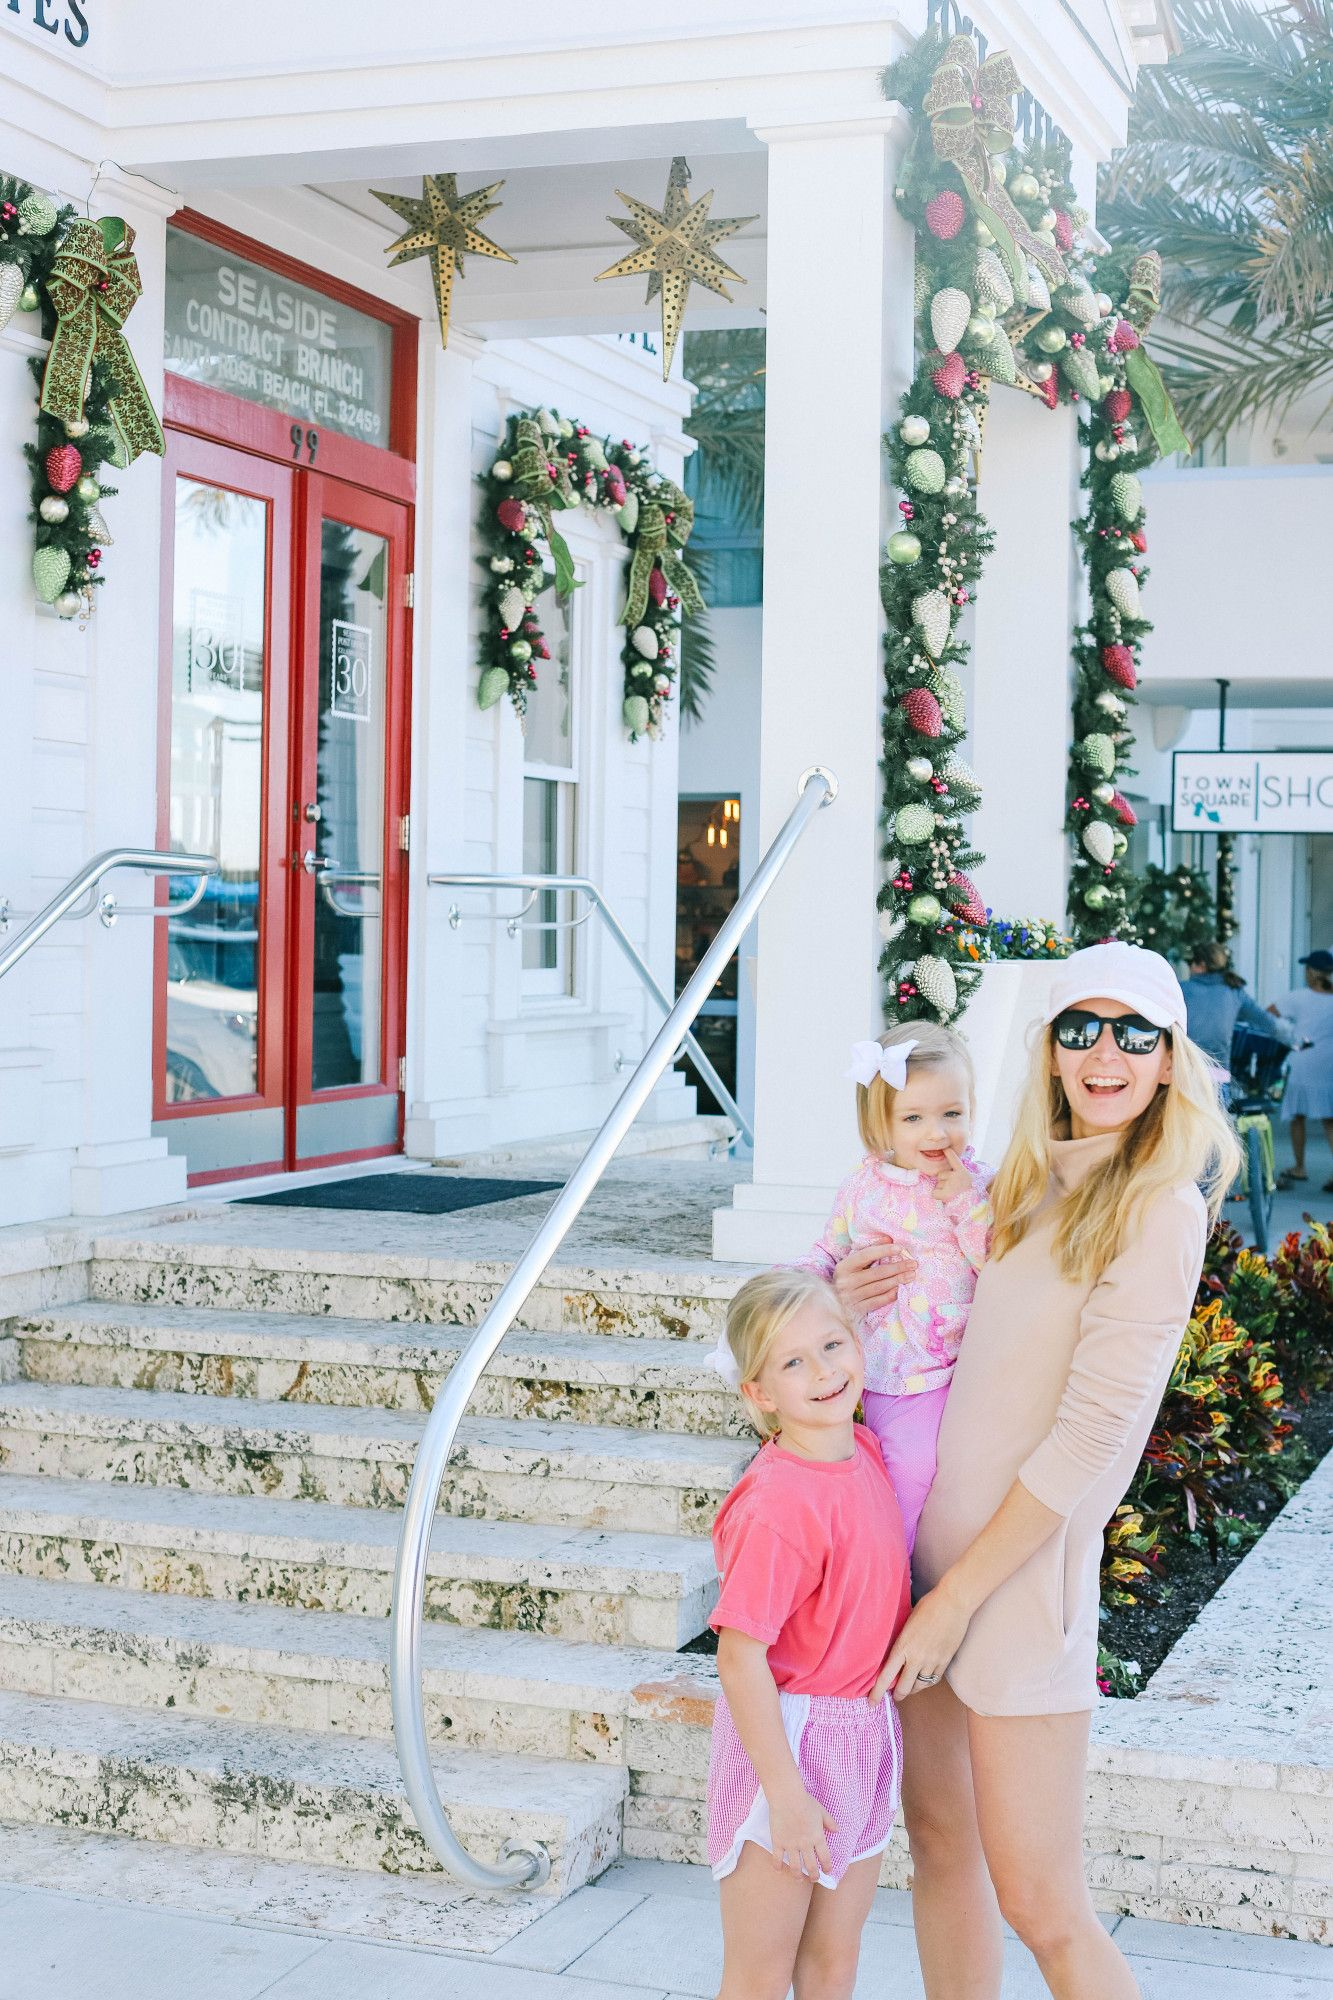 Holidays On 30a In 2020 Holiday Thanksgiving Traditions 30a